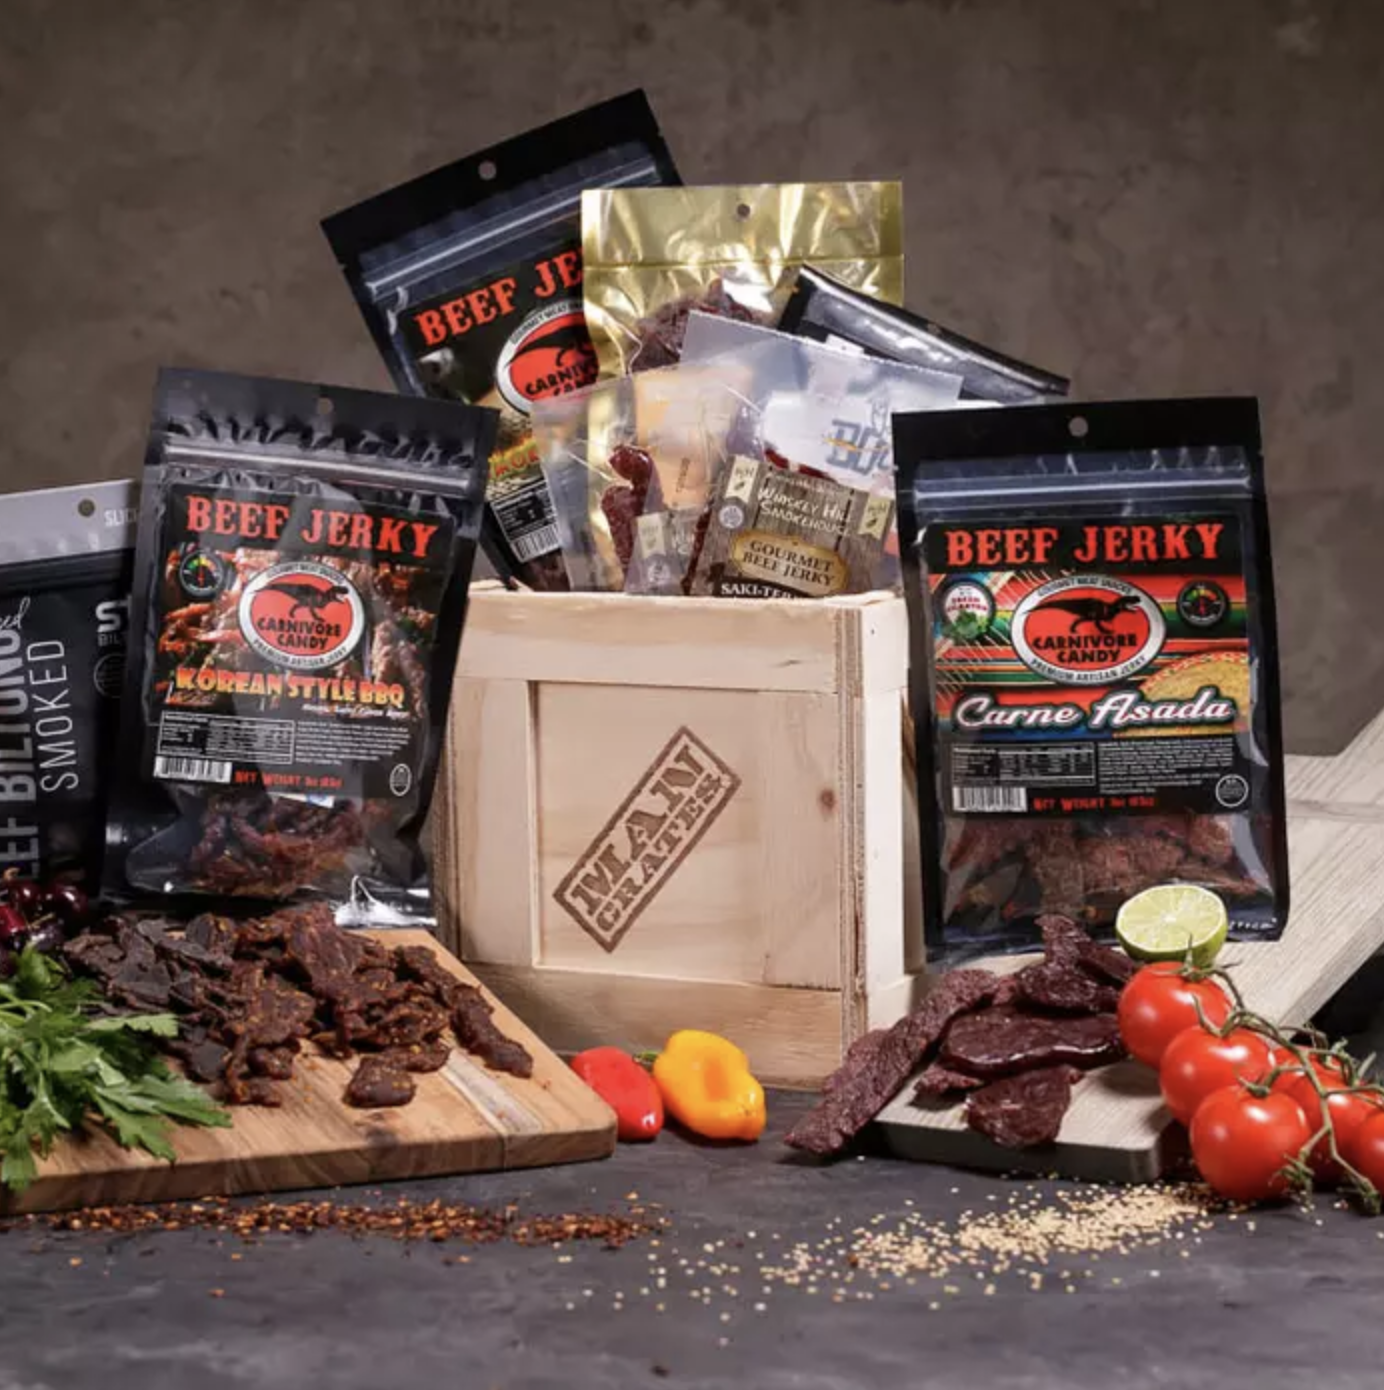 The crate surrounded by a variety of jerky